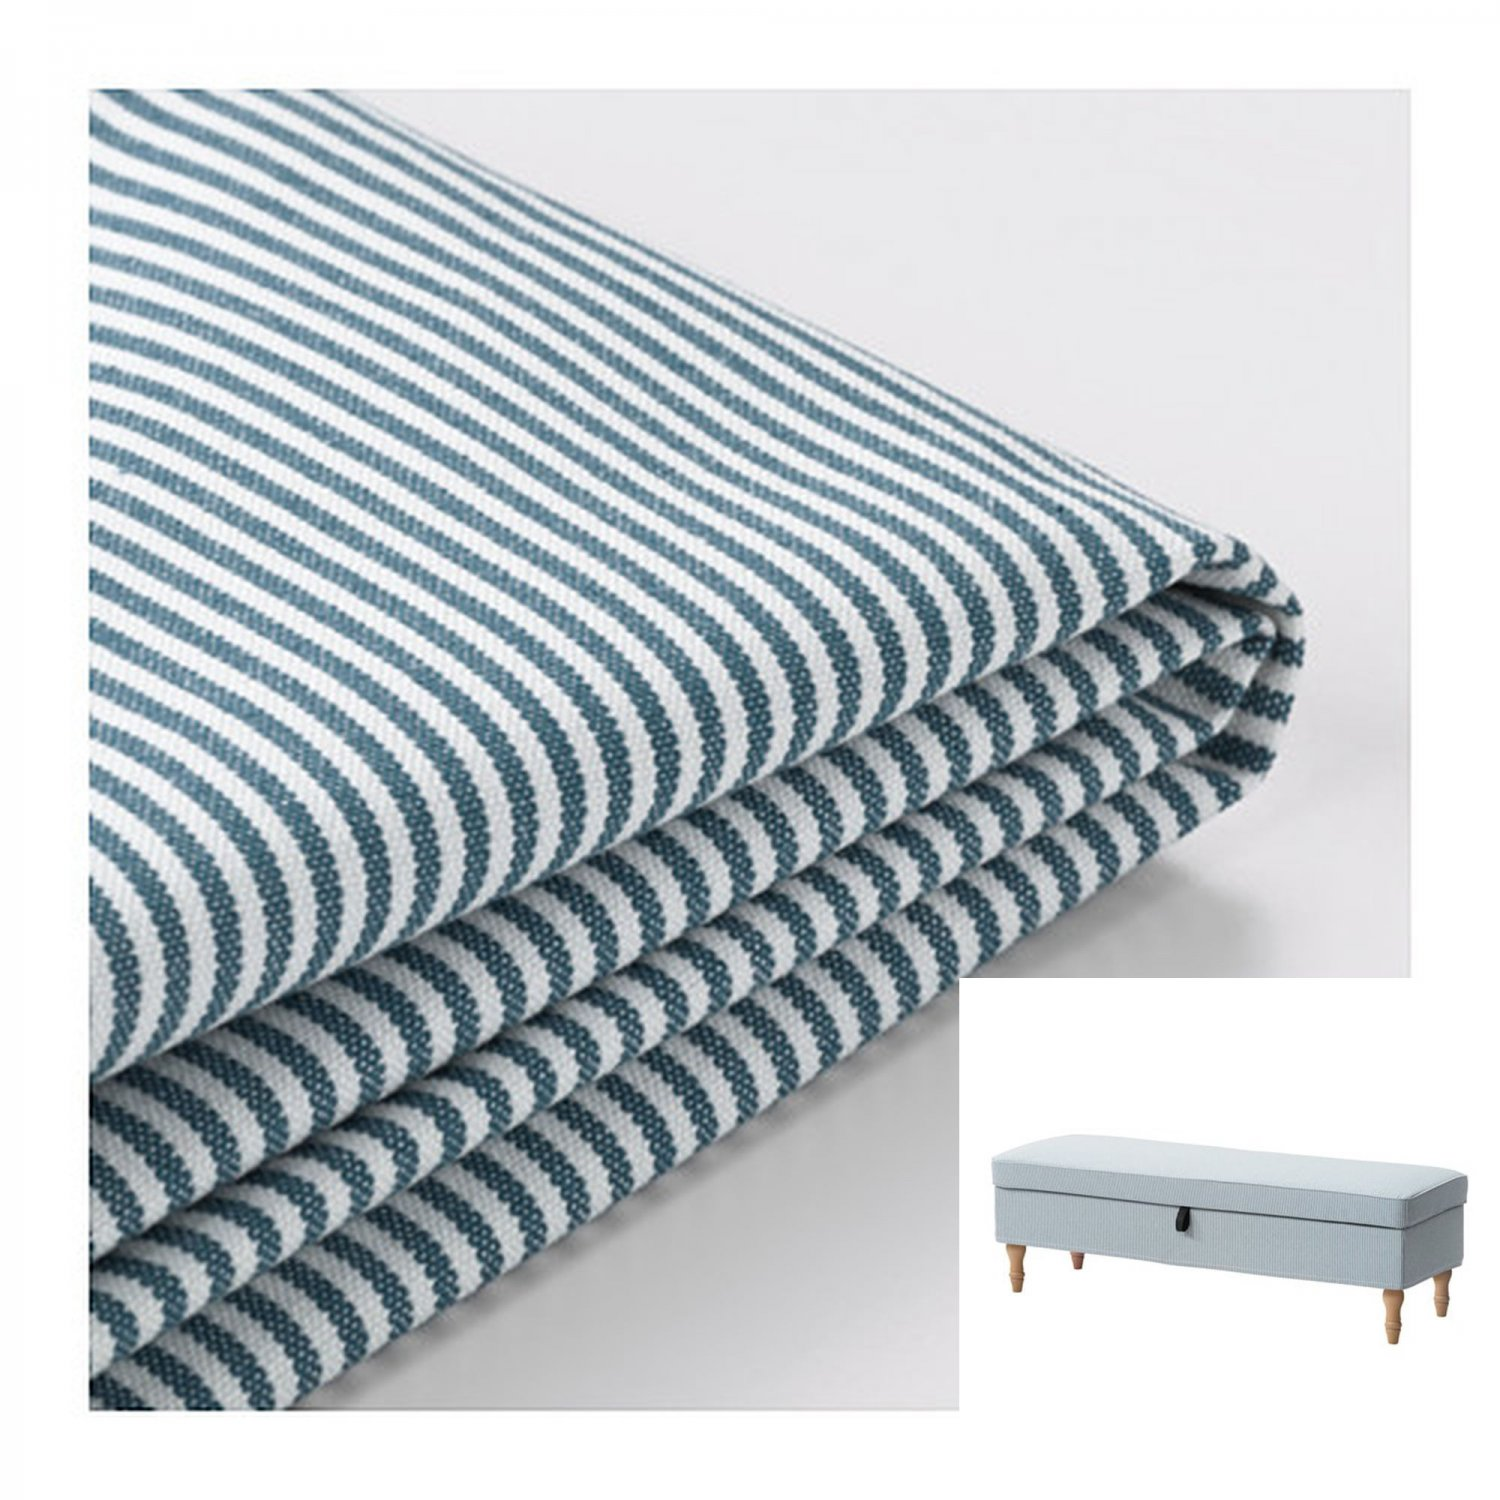 Ikea Stocksund Bench Slipcover Cover Remvallen Blue White